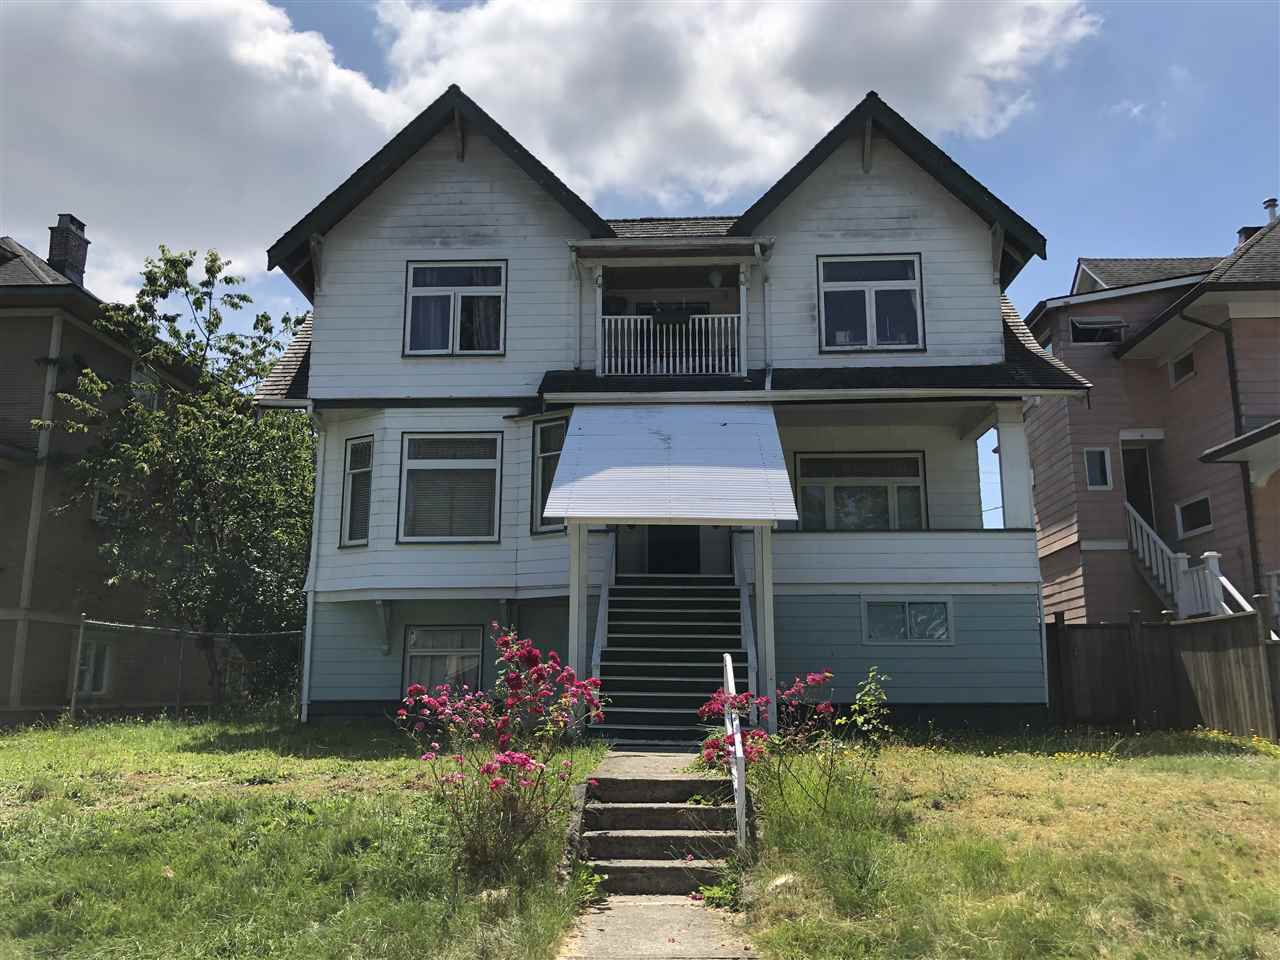 Main Photo: 946 W 14TH Avenue in Vancouver: Fairview VW House for sale (Vancouver West)  : MLS®# R2381189